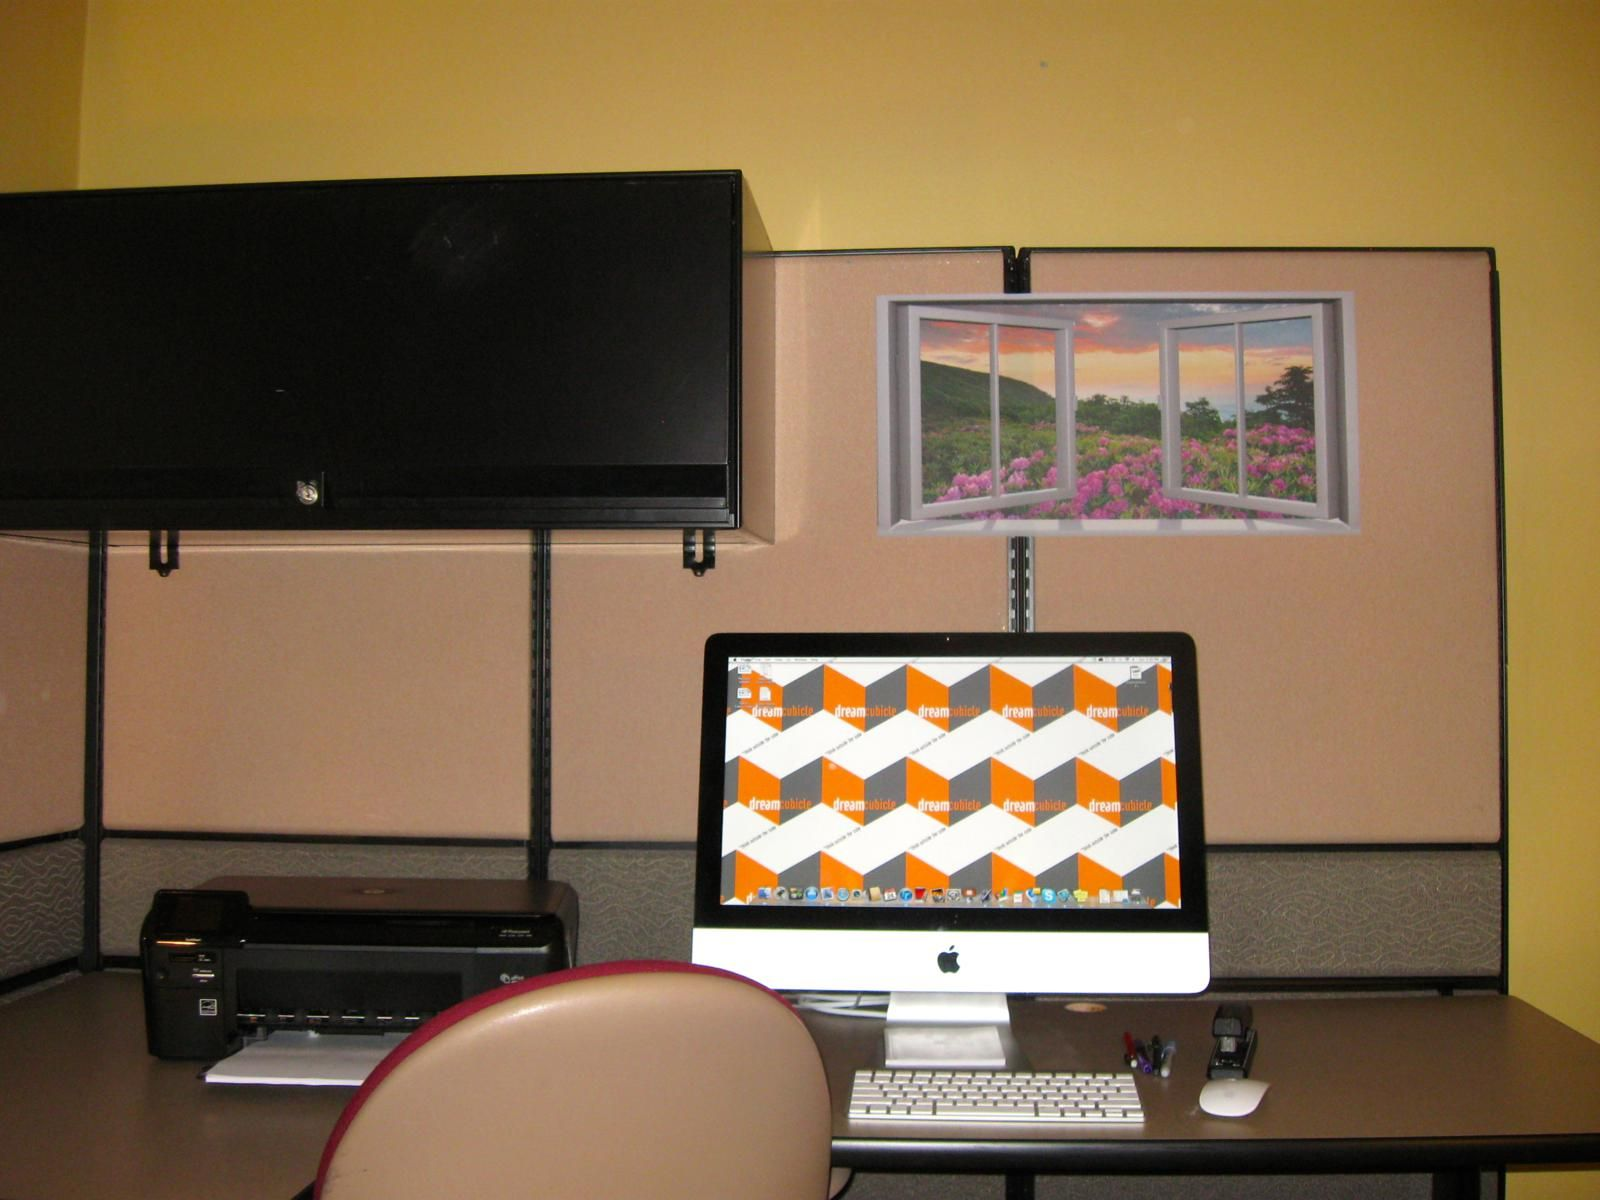 Office Cubicle Decor office cubicle decor - google search | office cubicle ideas